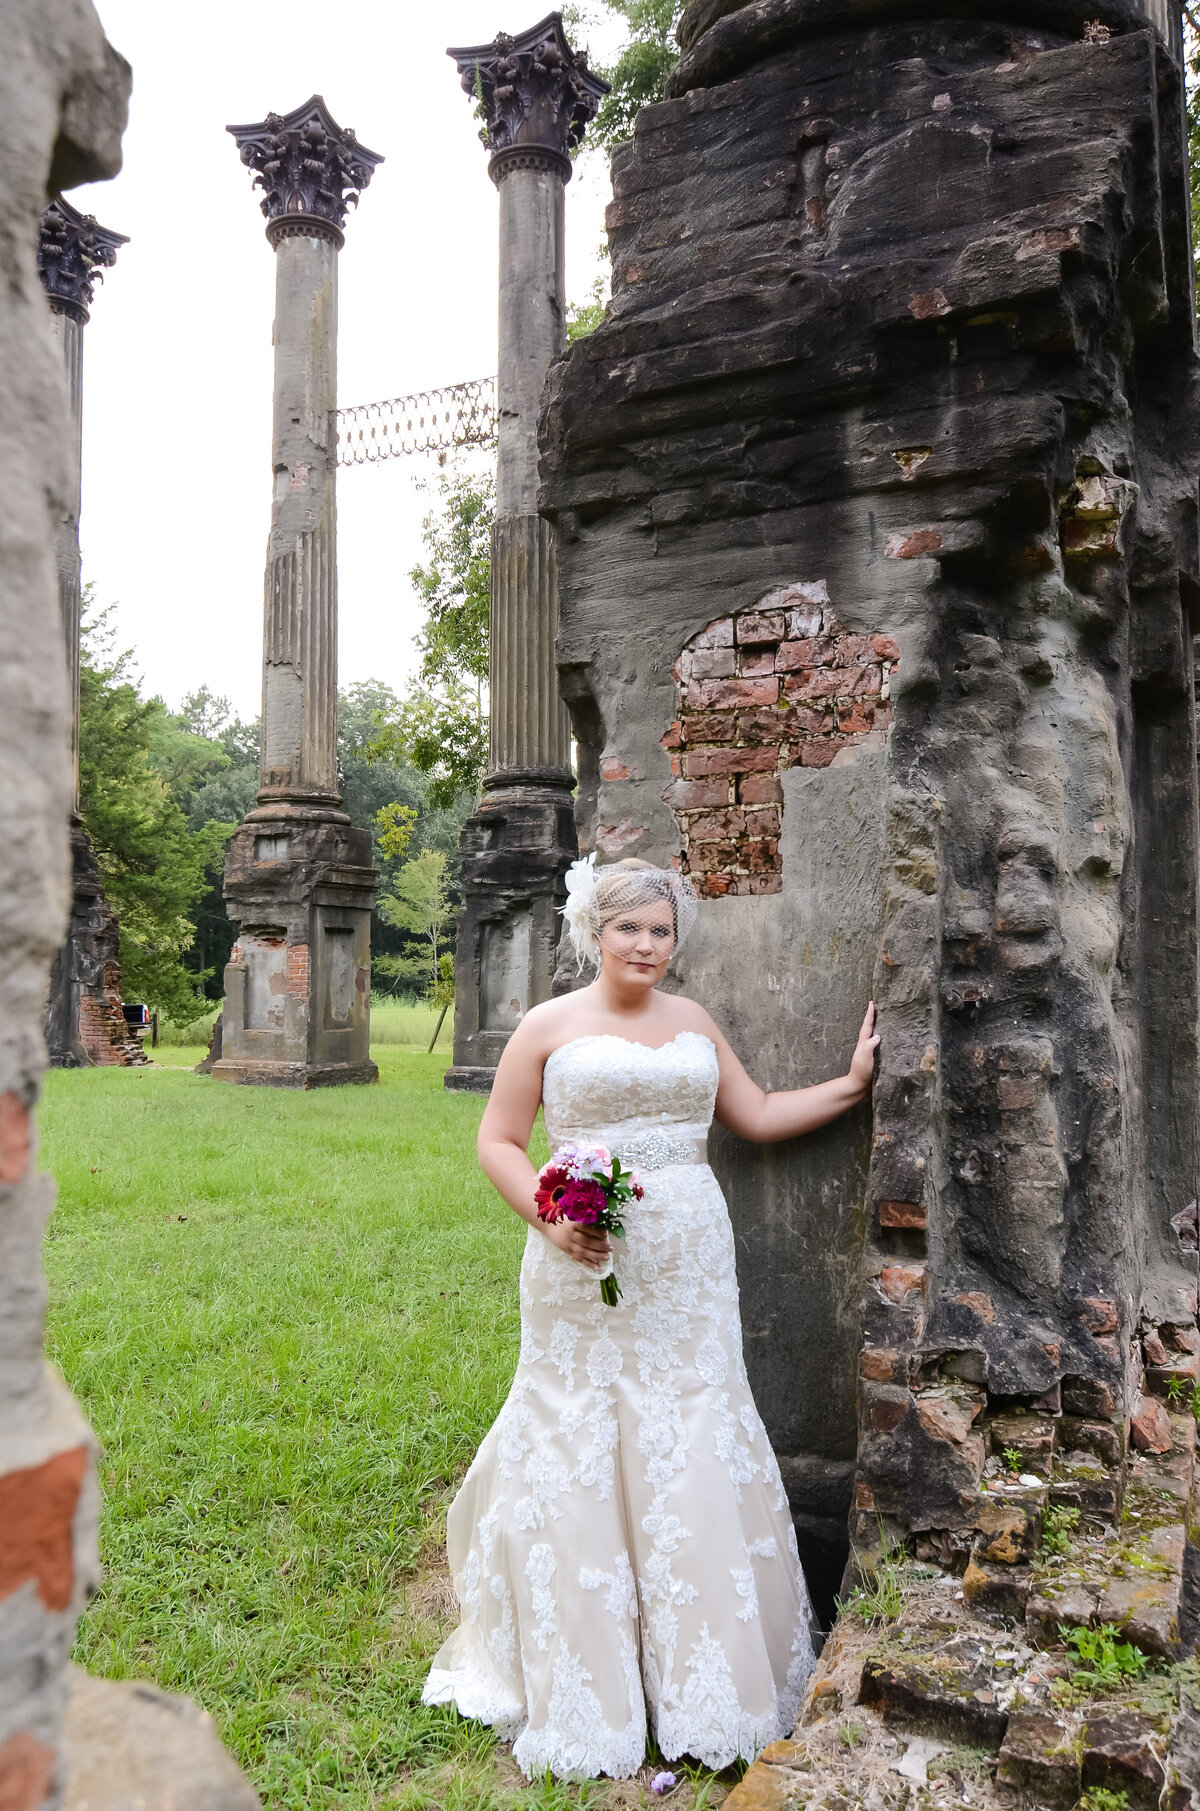 Beautiful bridal portrait photography: Bride with a birdcage veil stands among the ruins at Windsor plantation in MS